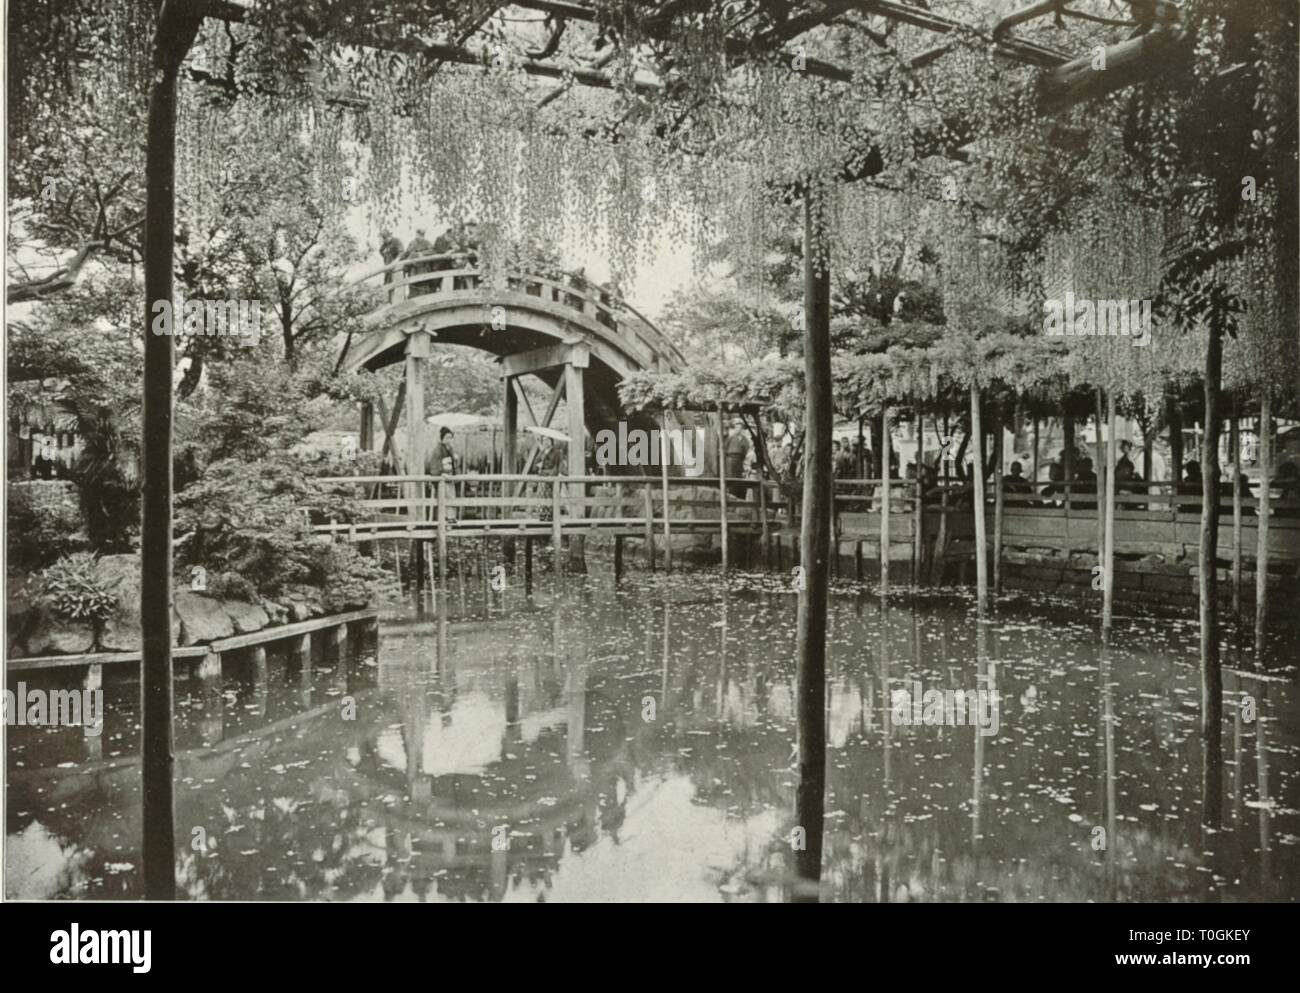 """'Kameido', 1910. From """"In Lotus-Land Japan"""", by Herbert G. Ponting, F.R.G.S. [Macmillan and Co., Limited, London, 1910] - Stock Image"""